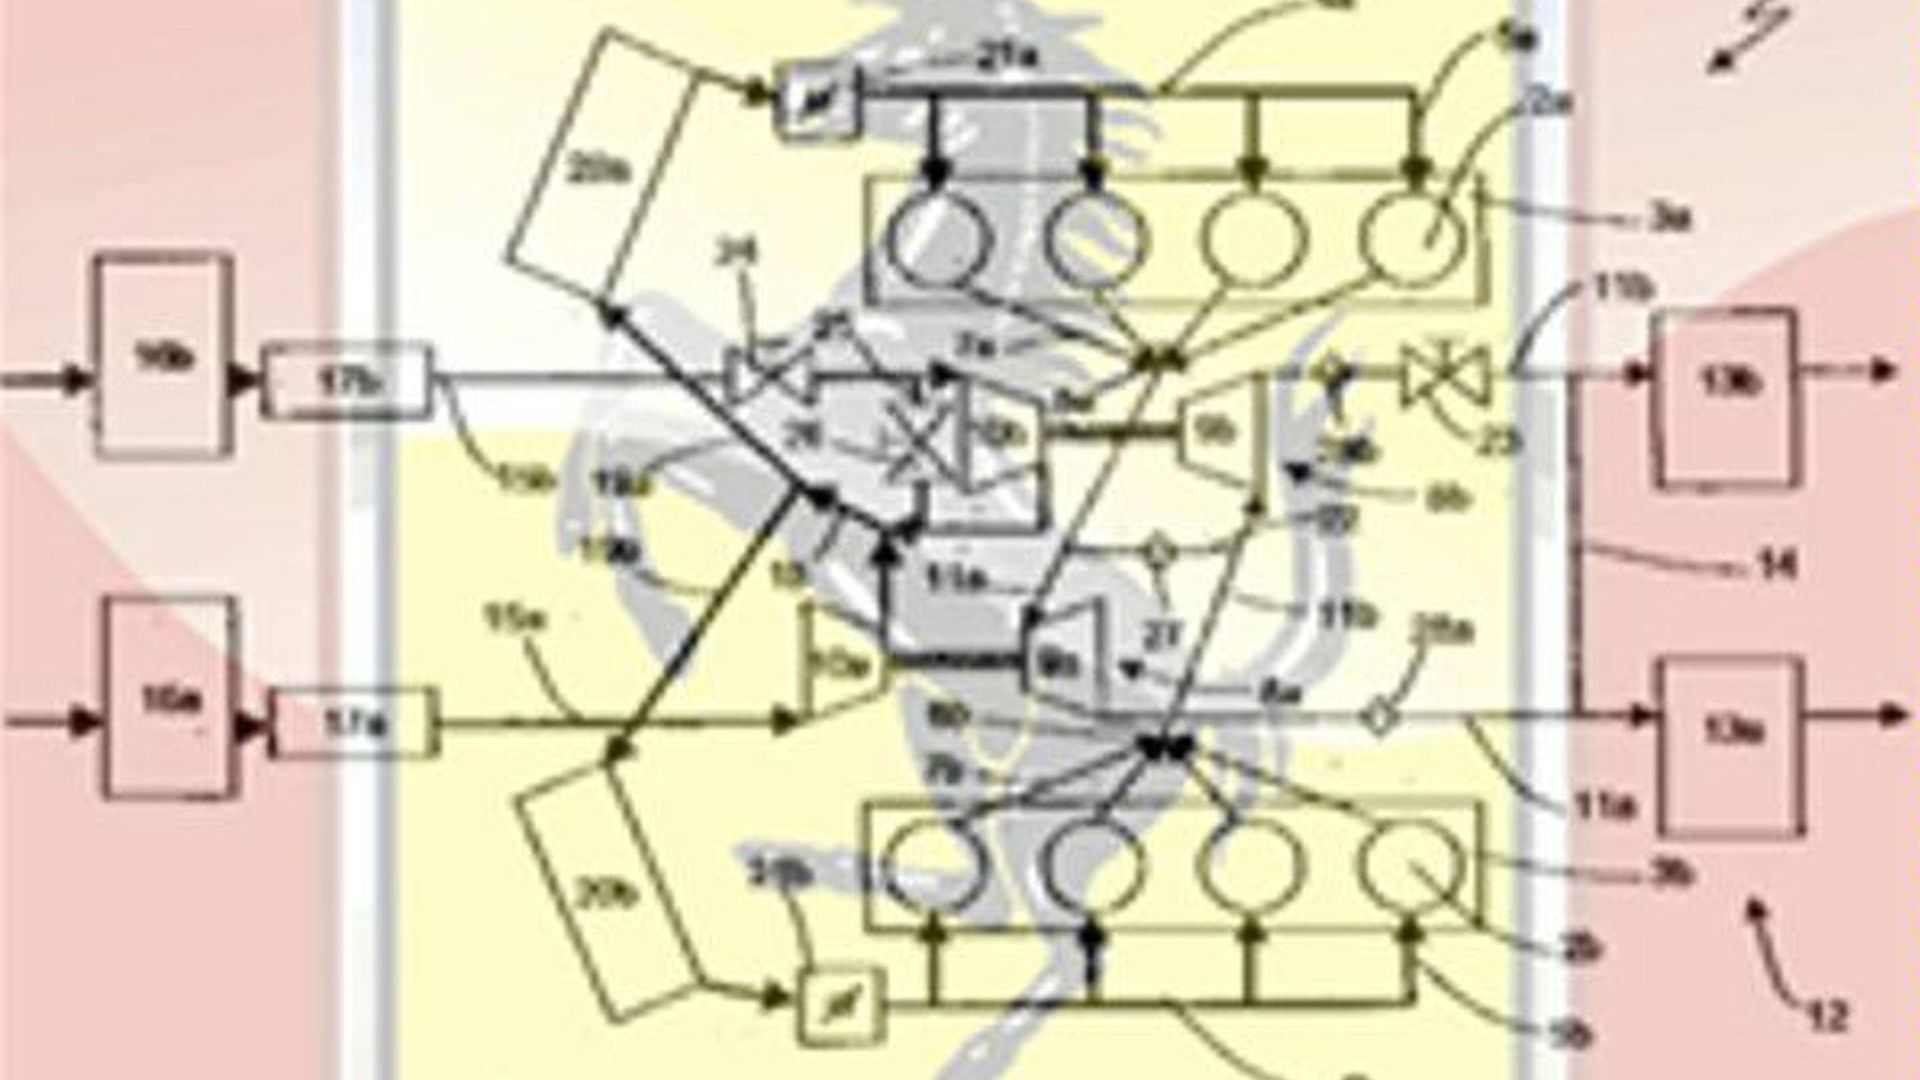 ferrari turbo engine patent office schematics surface ferrari turbo engine patent office schematics surface product 2009 05 29 17 43 52